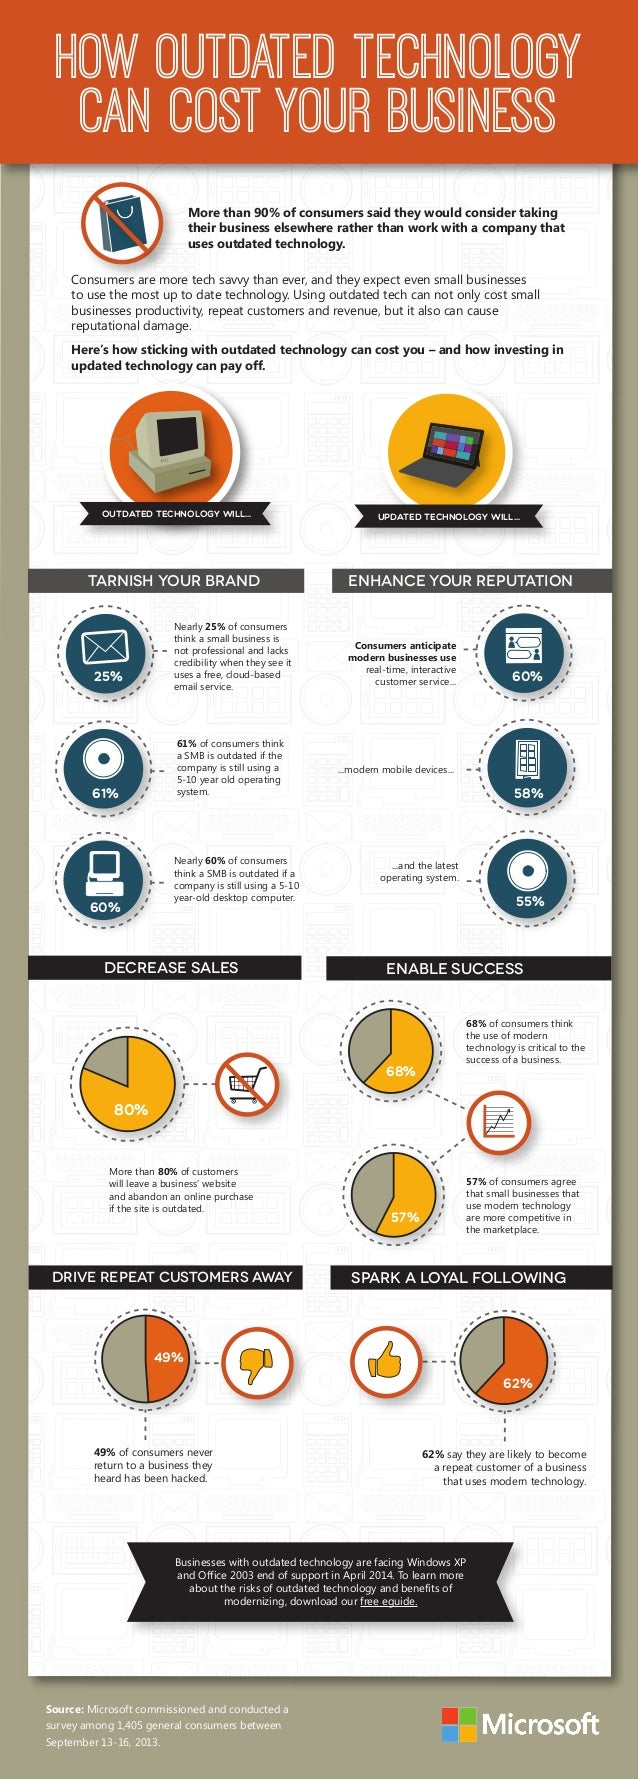 25% HOW OUTDATED TECHNOLOGY CAN COST YOUR BUSINESS OUTDATED TECHNOLOGY WILL... TARNISH YOUR BRAND enhance your reputation ...